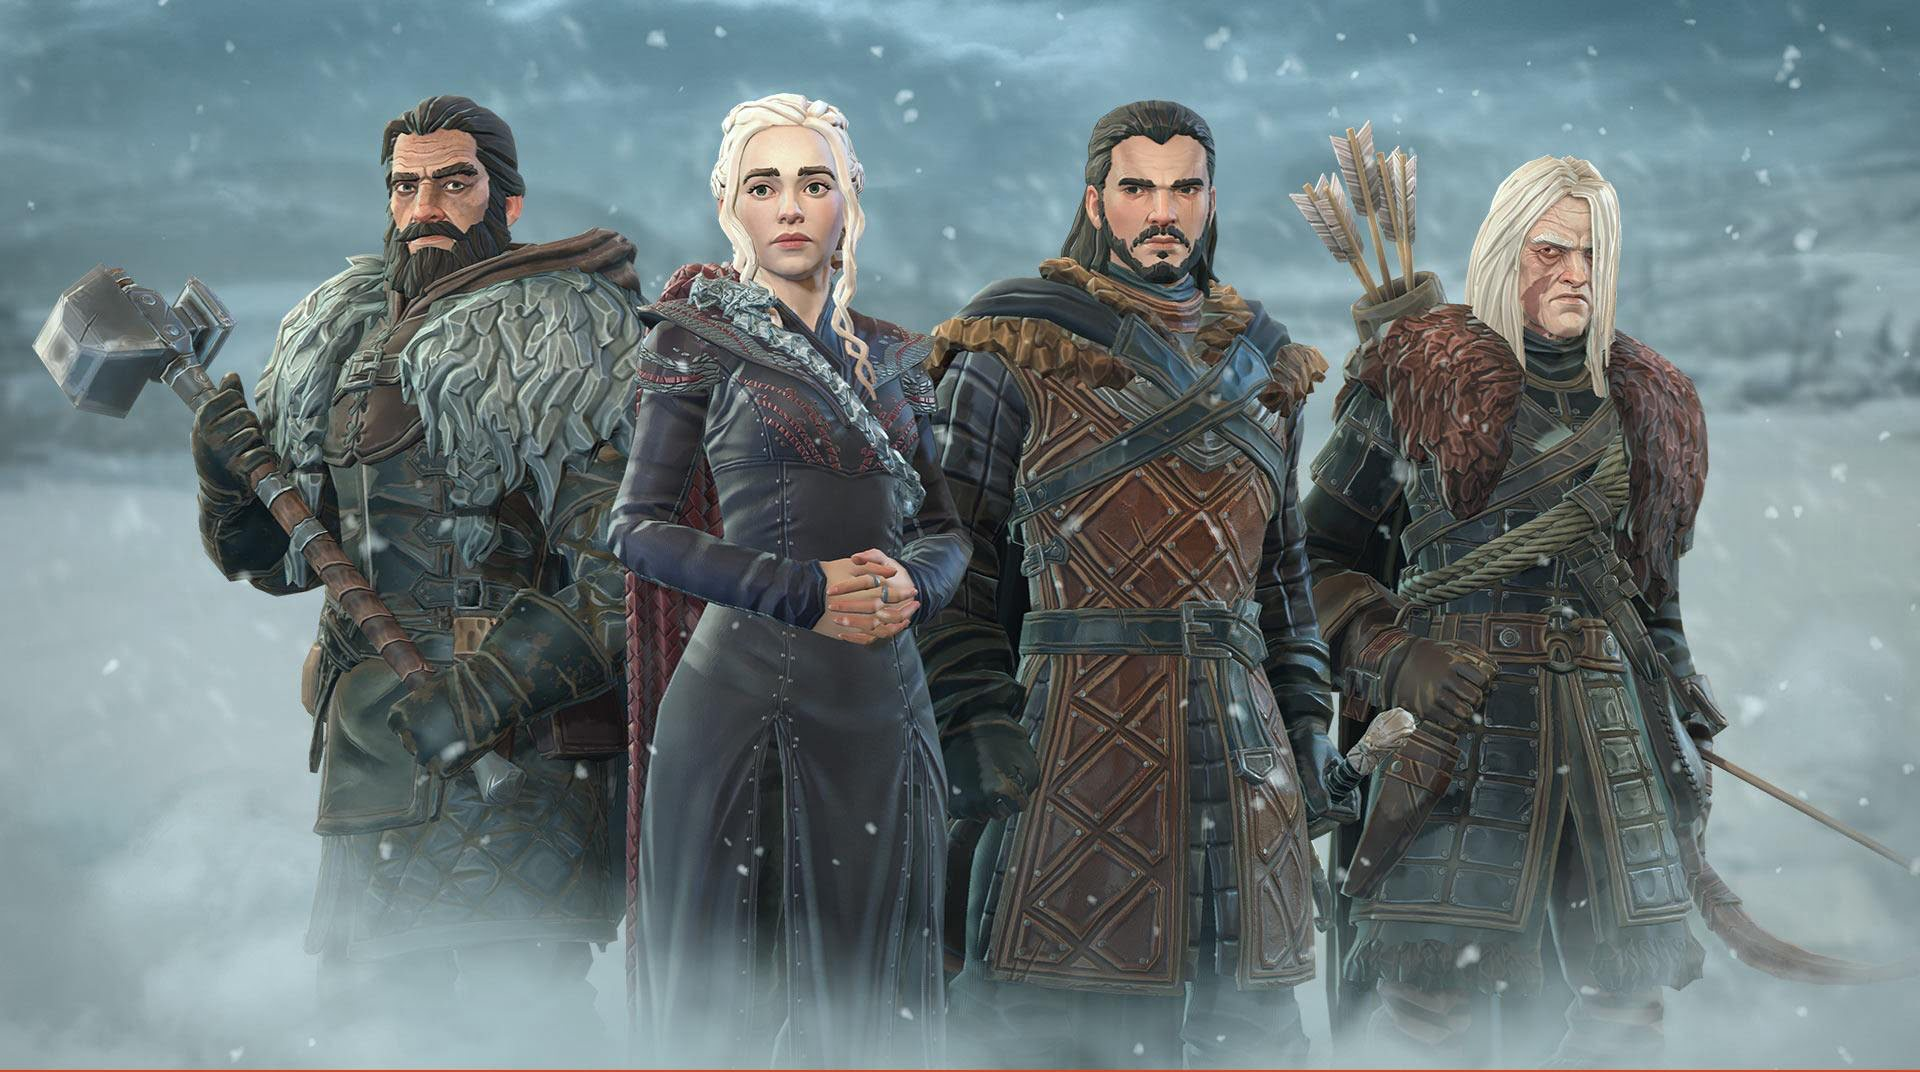 Game of Thrones Beyond the Wall Apk download